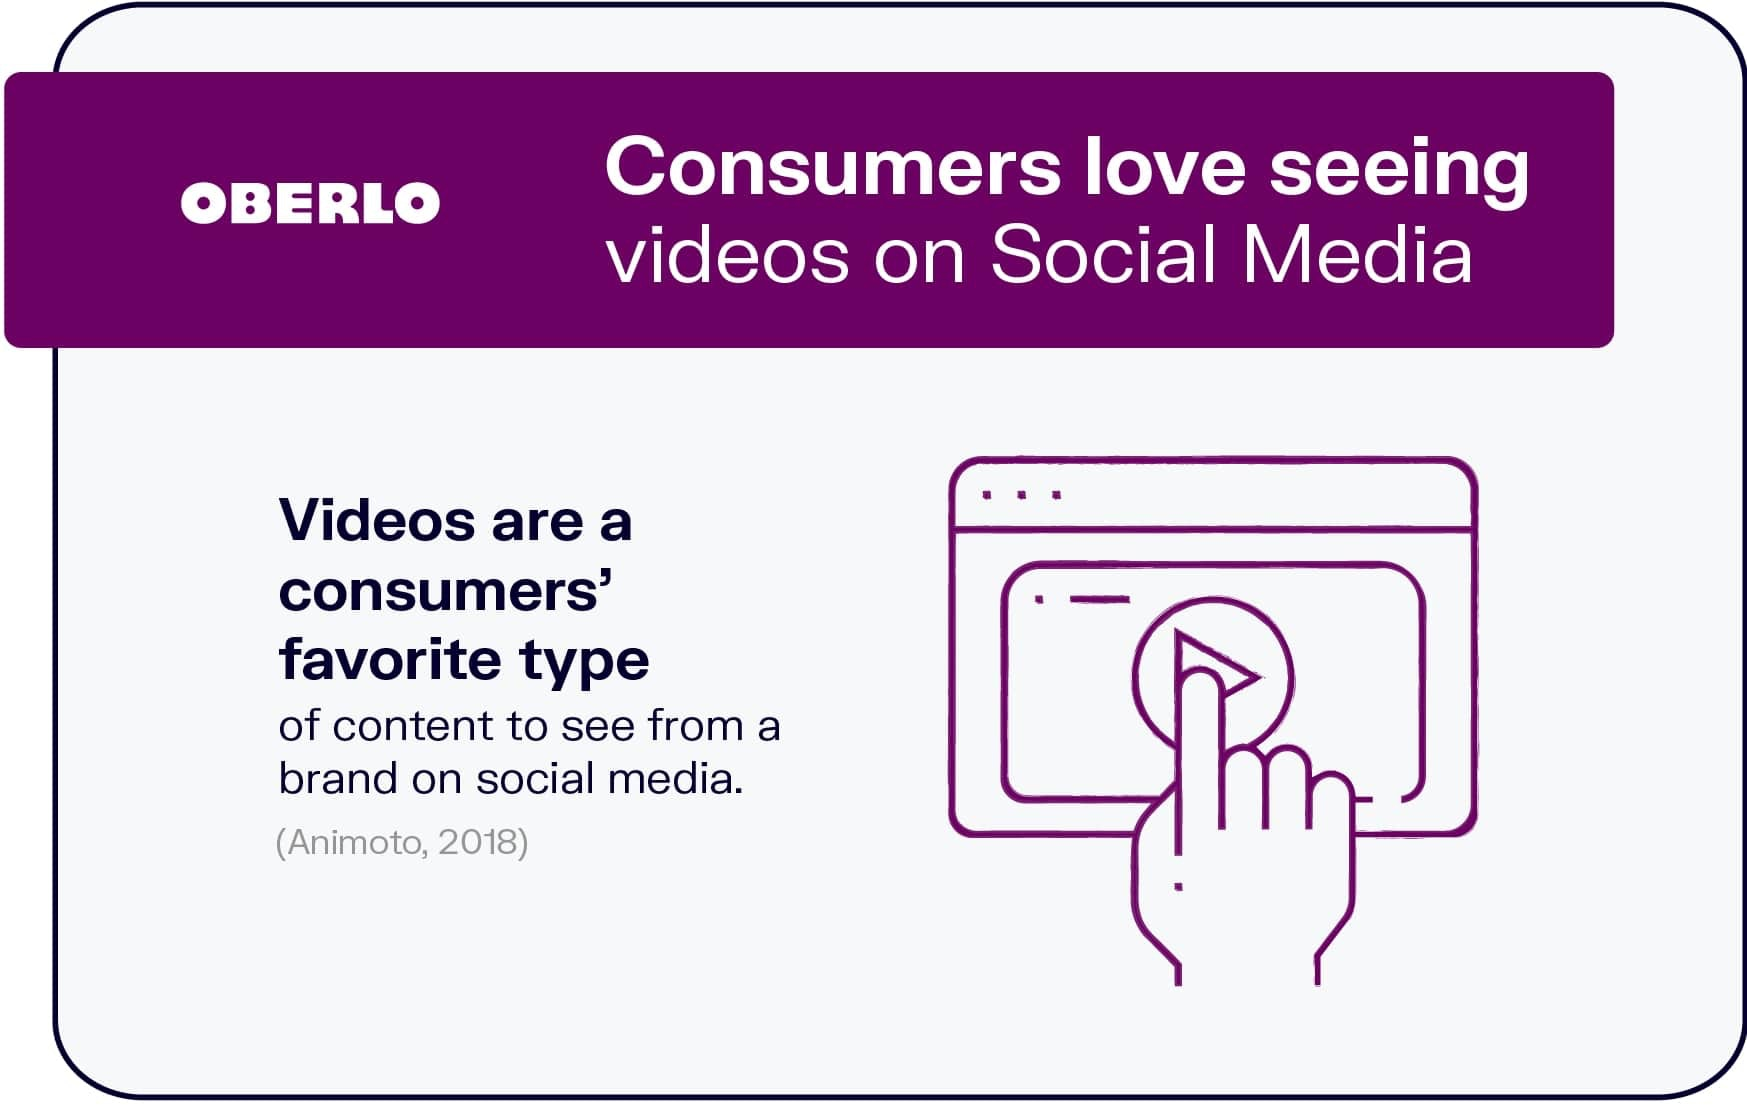 Consumers Love Seeing Videos on Social Media